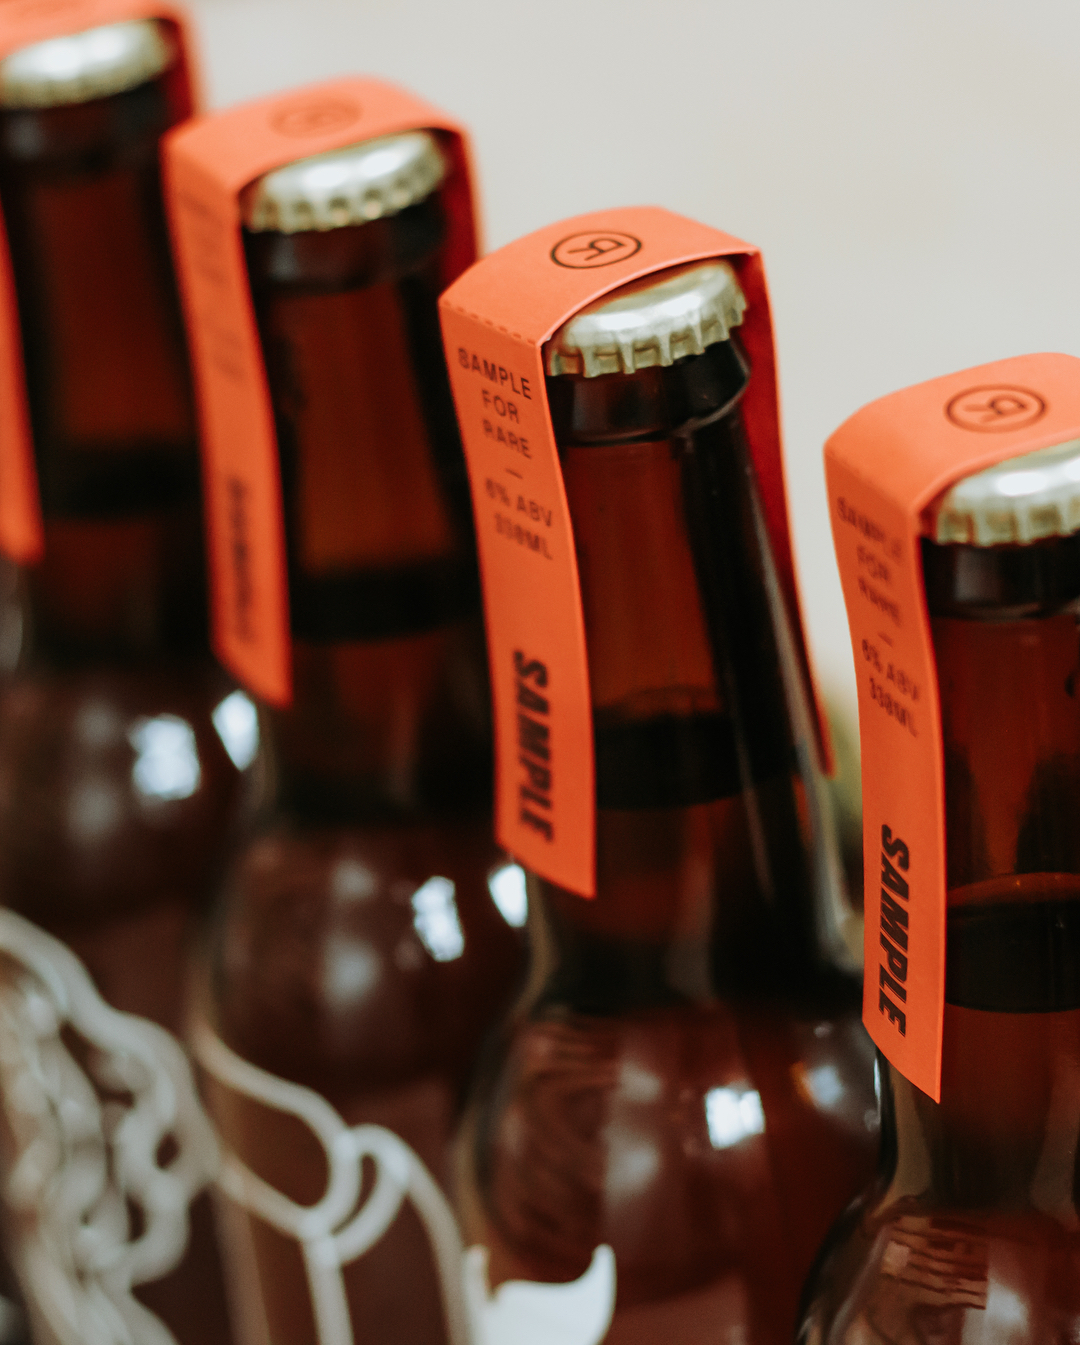 Specialty letterpress beer neck labels for Sample Brew on Colorplan 3